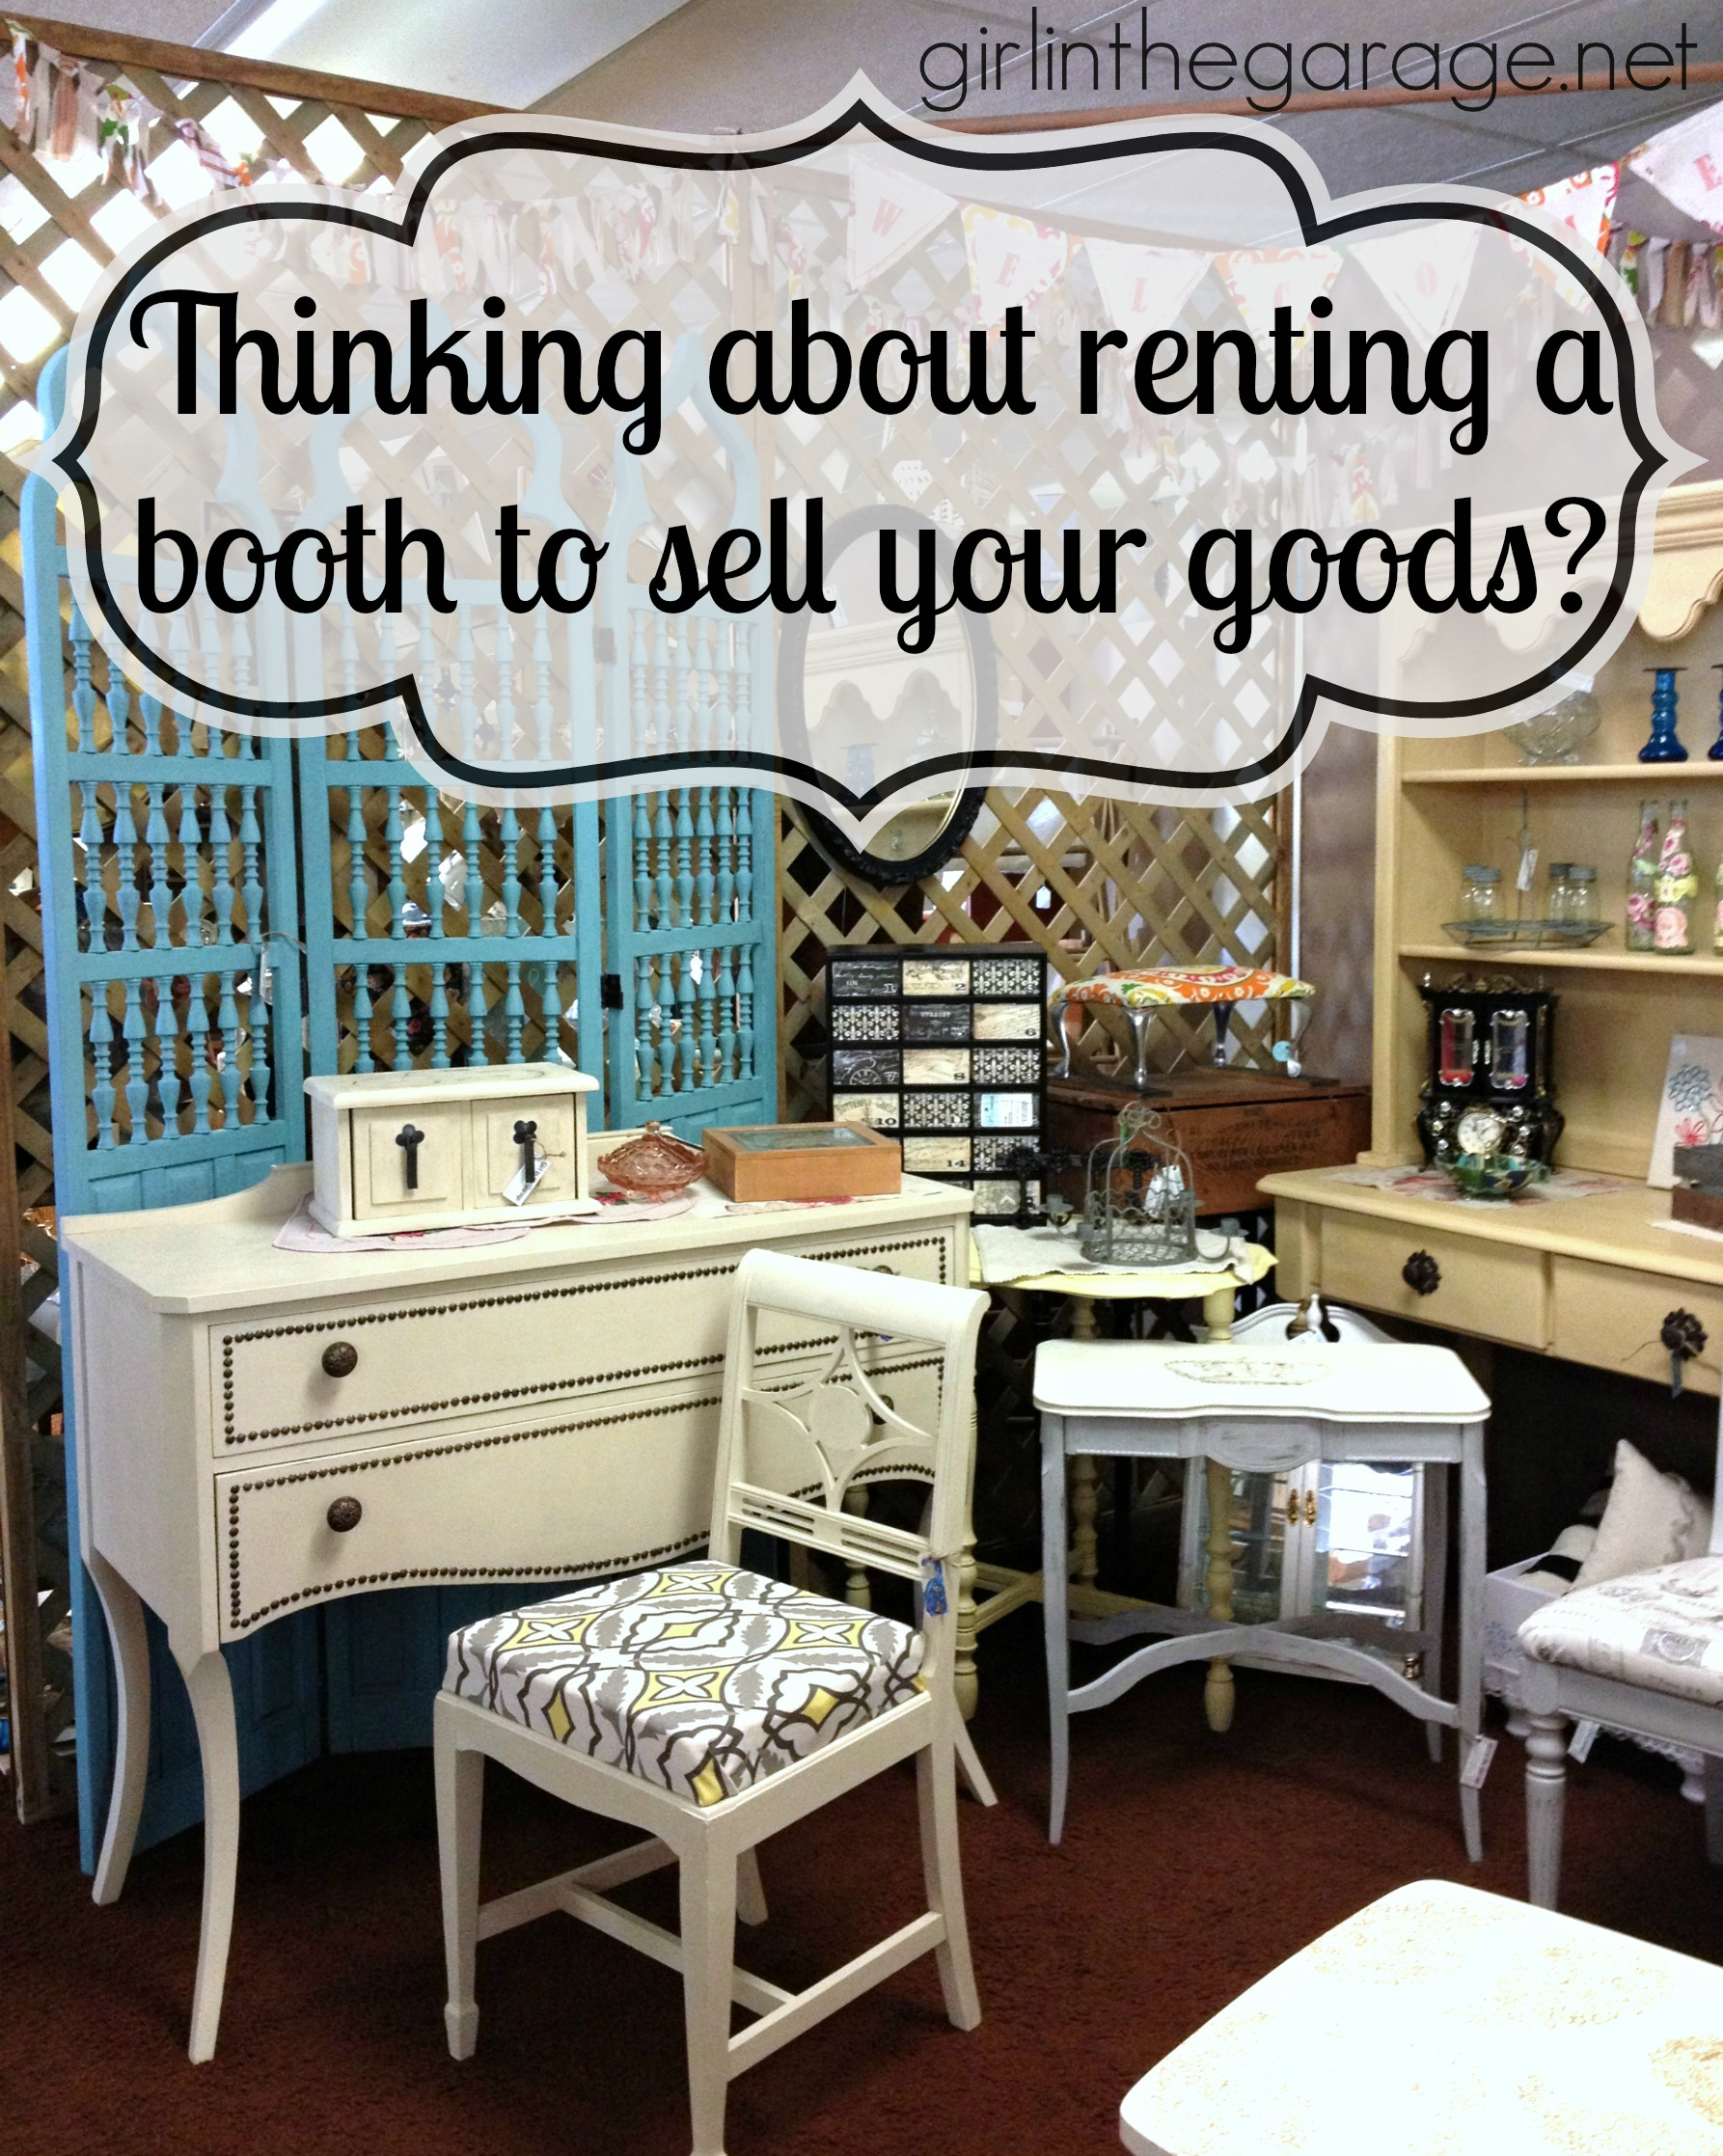 Thinking about renting a booth to sell your goods? Advice from girlinthegarage.net